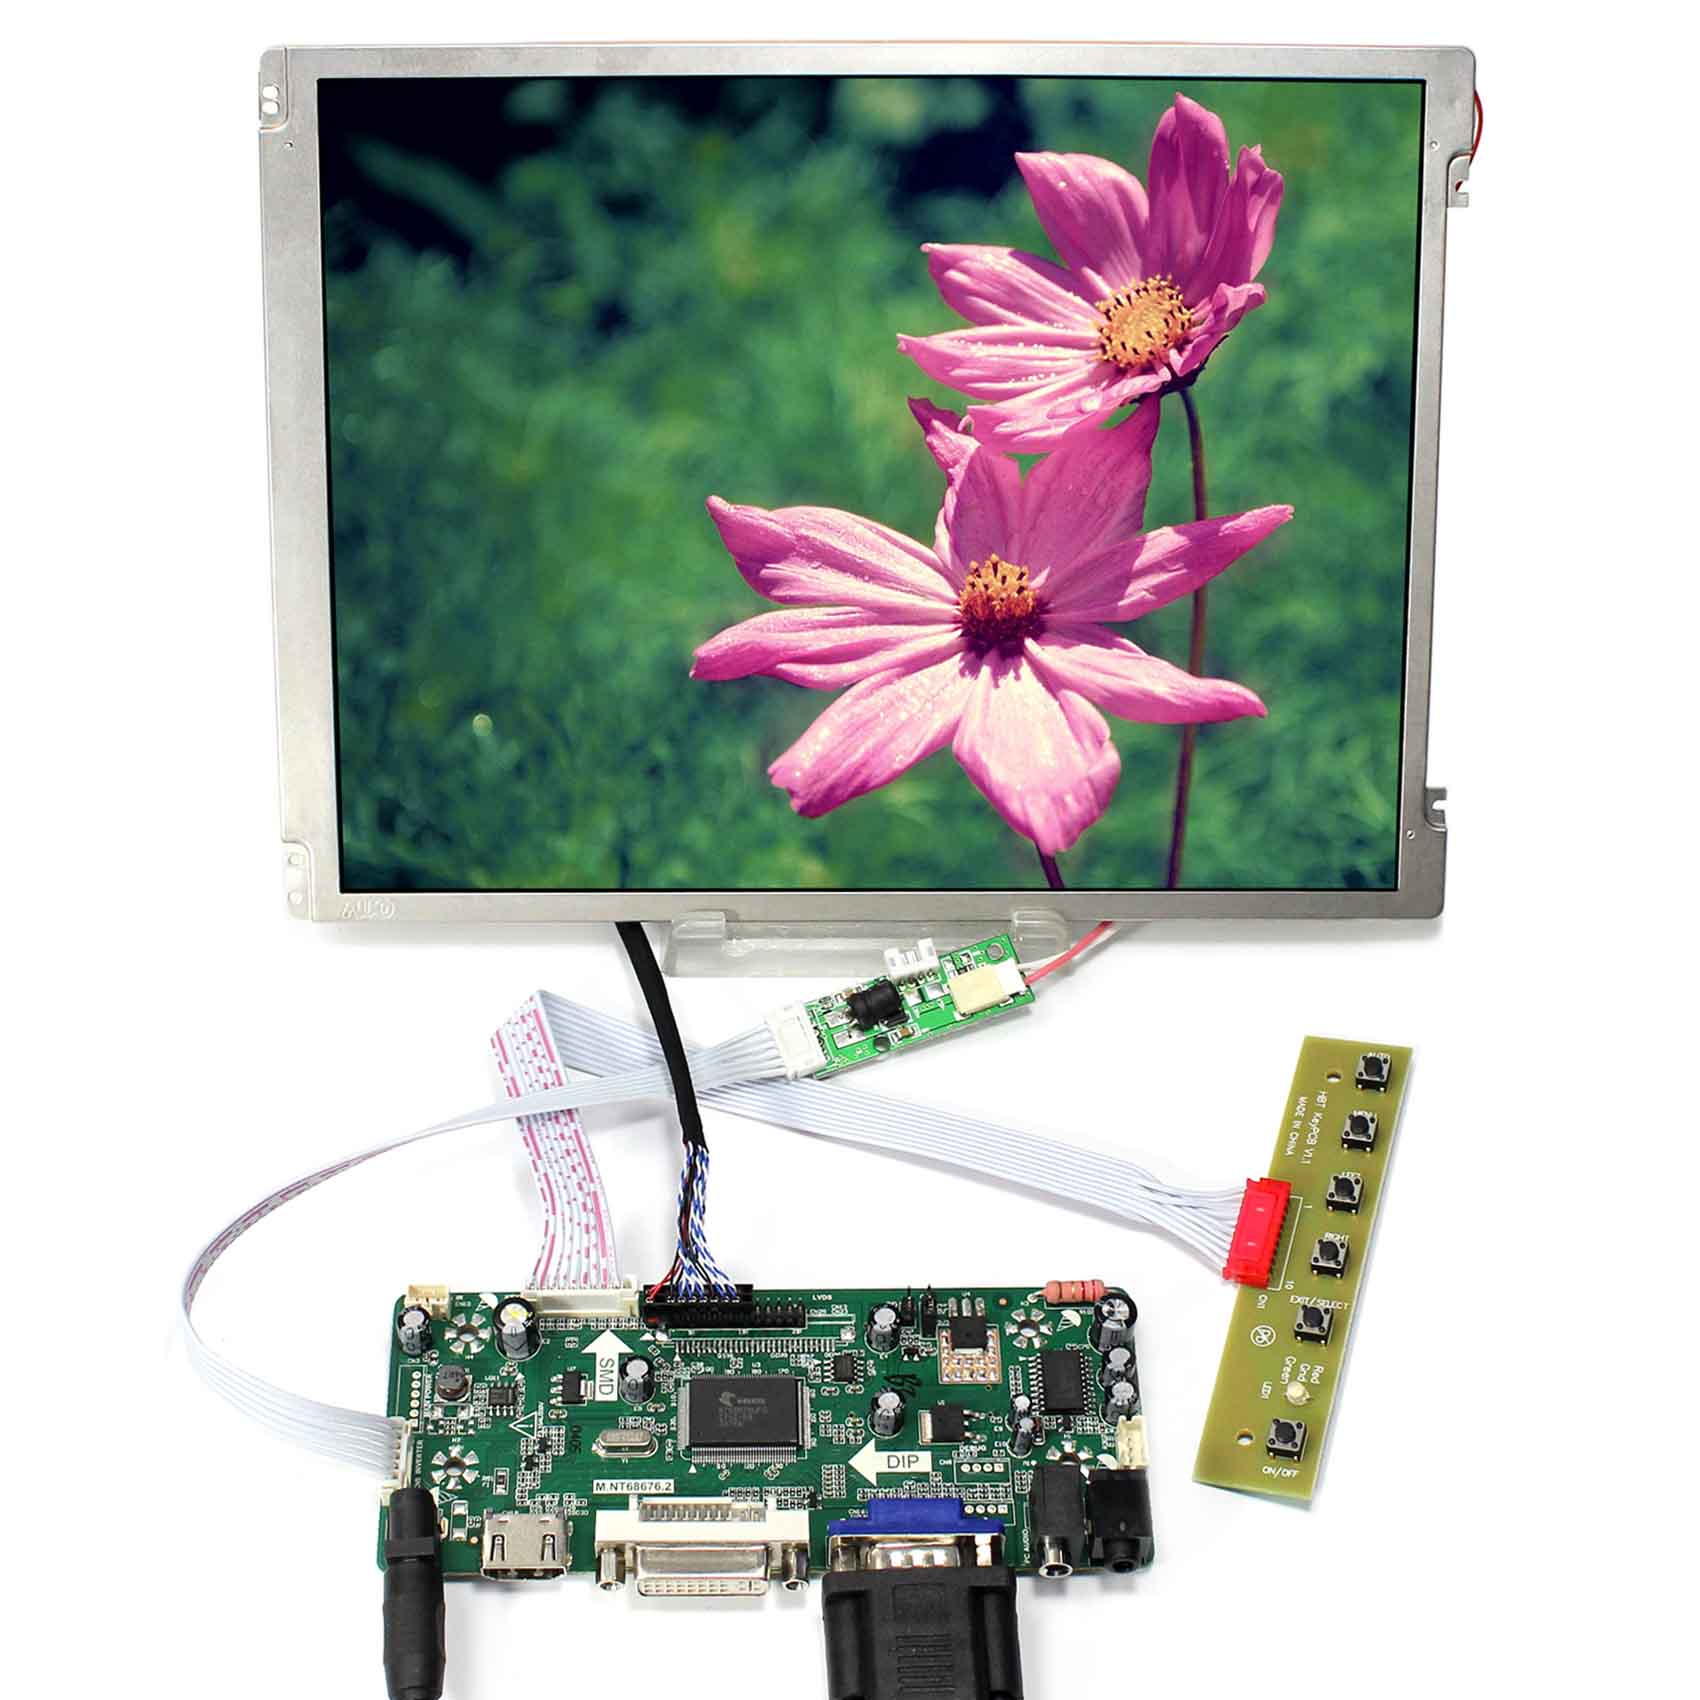 HDMI DVI VGA AUDIO LCD Control Board 10.4inch 800x600 LED Backlight Replace G104SN03-V1